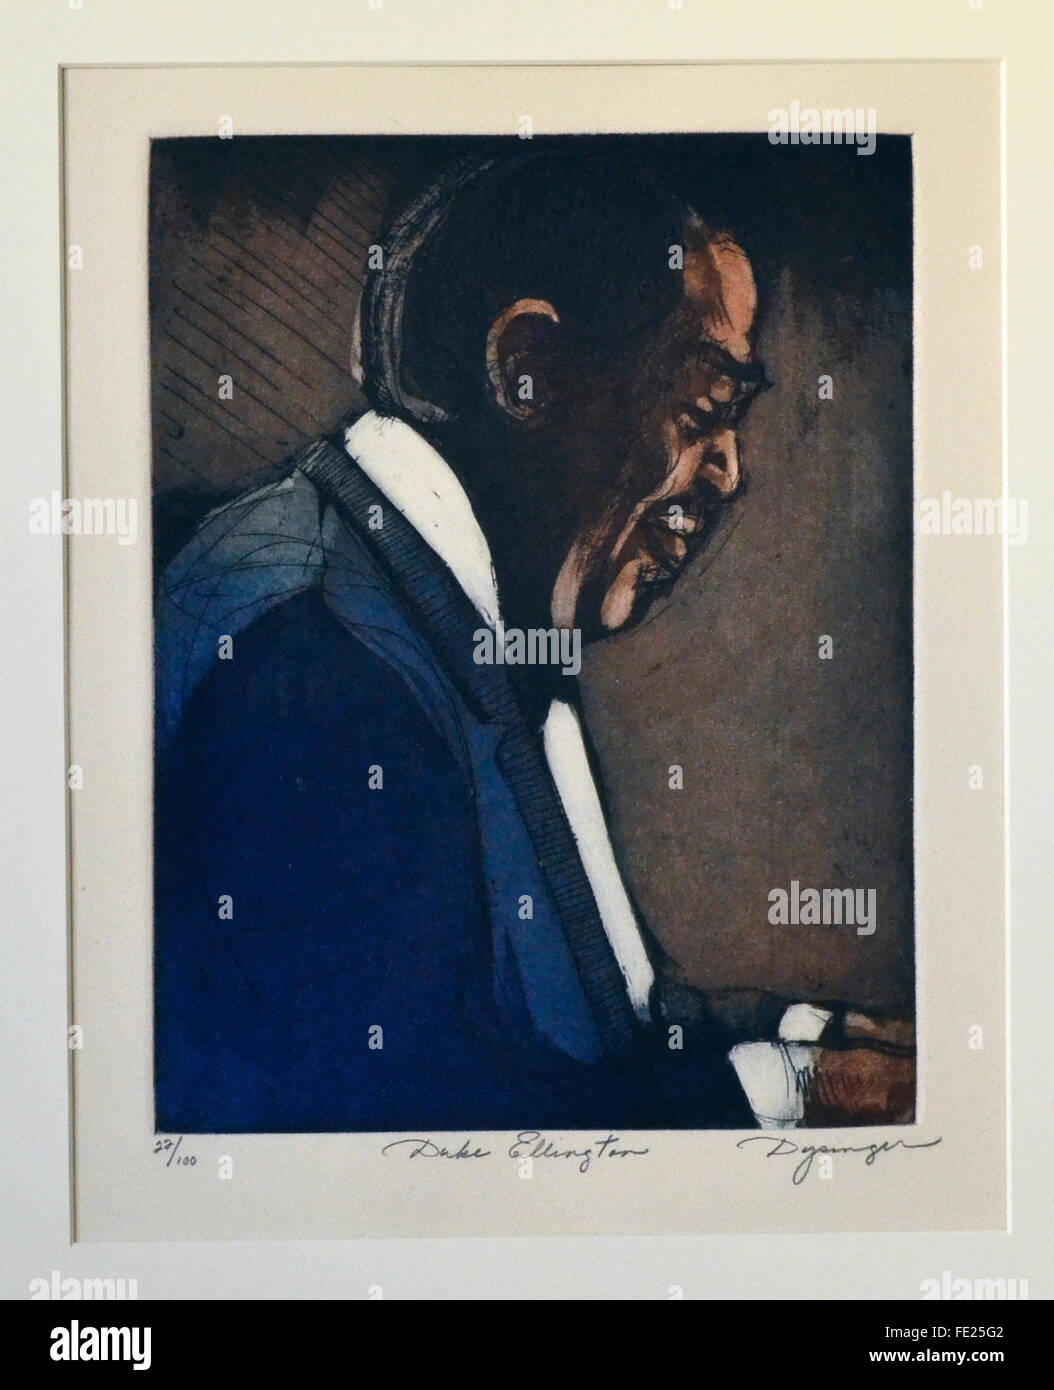 Big-Band era jazzman Duke Ellington has been preserved as a part of America's musical history with this profile - Stock Image